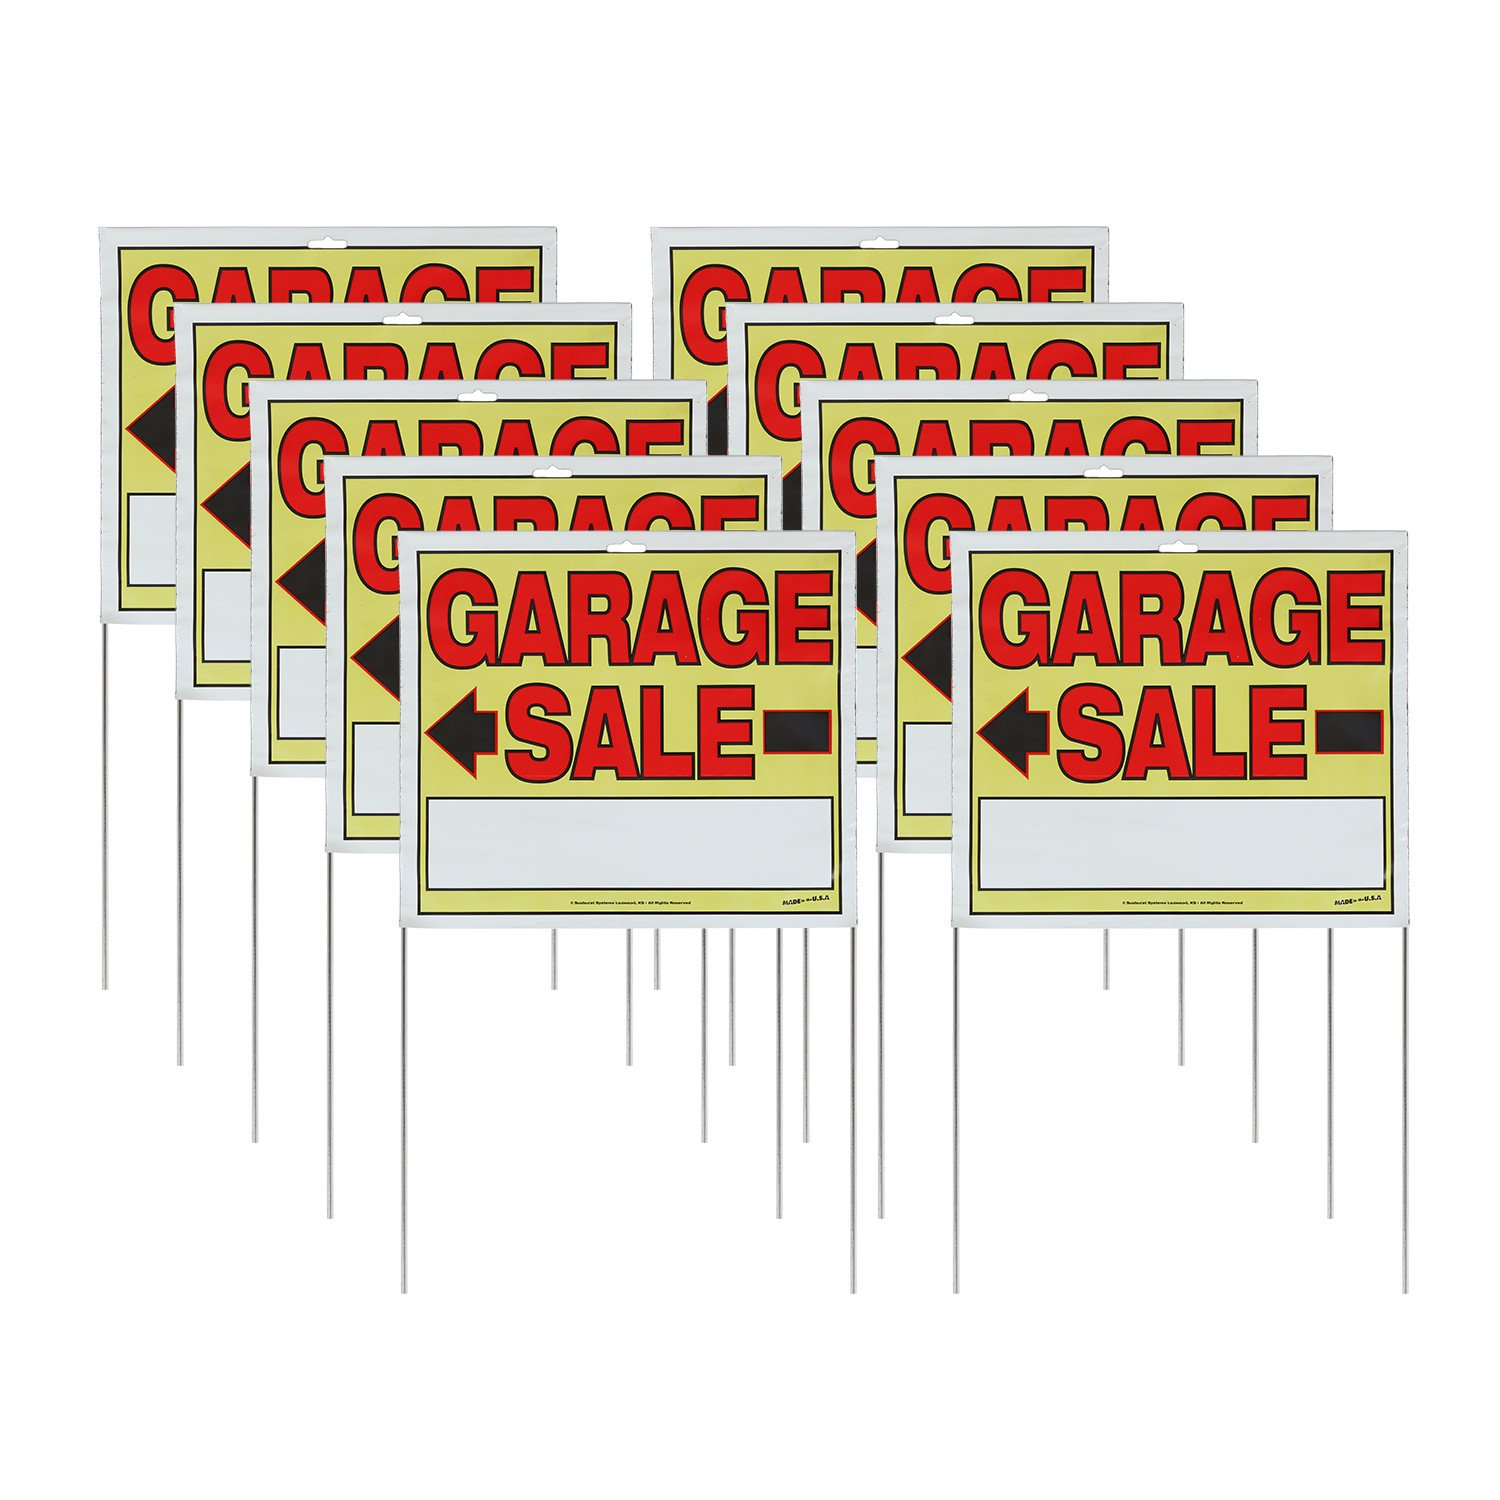 Sunburst Systems 22''H x 14''W Double-sided Garage Sale Signs with Wire U-Stakes, 10 Pack